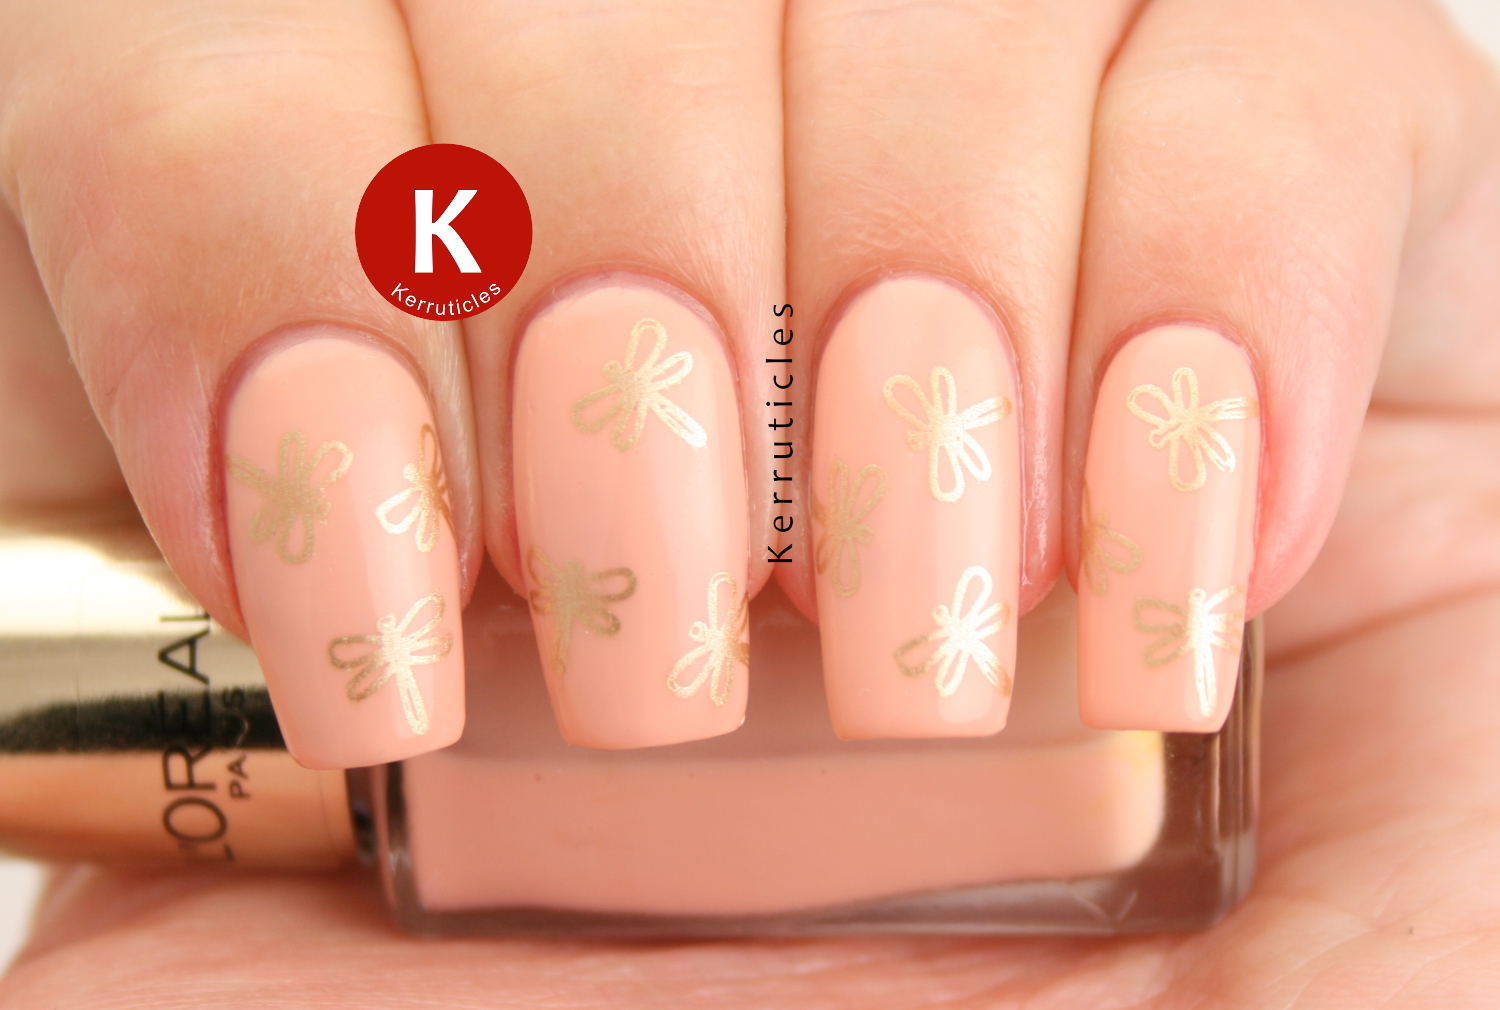 Dragonfly Nails Insects 40 Great Nail Art Ideas Kerruticles